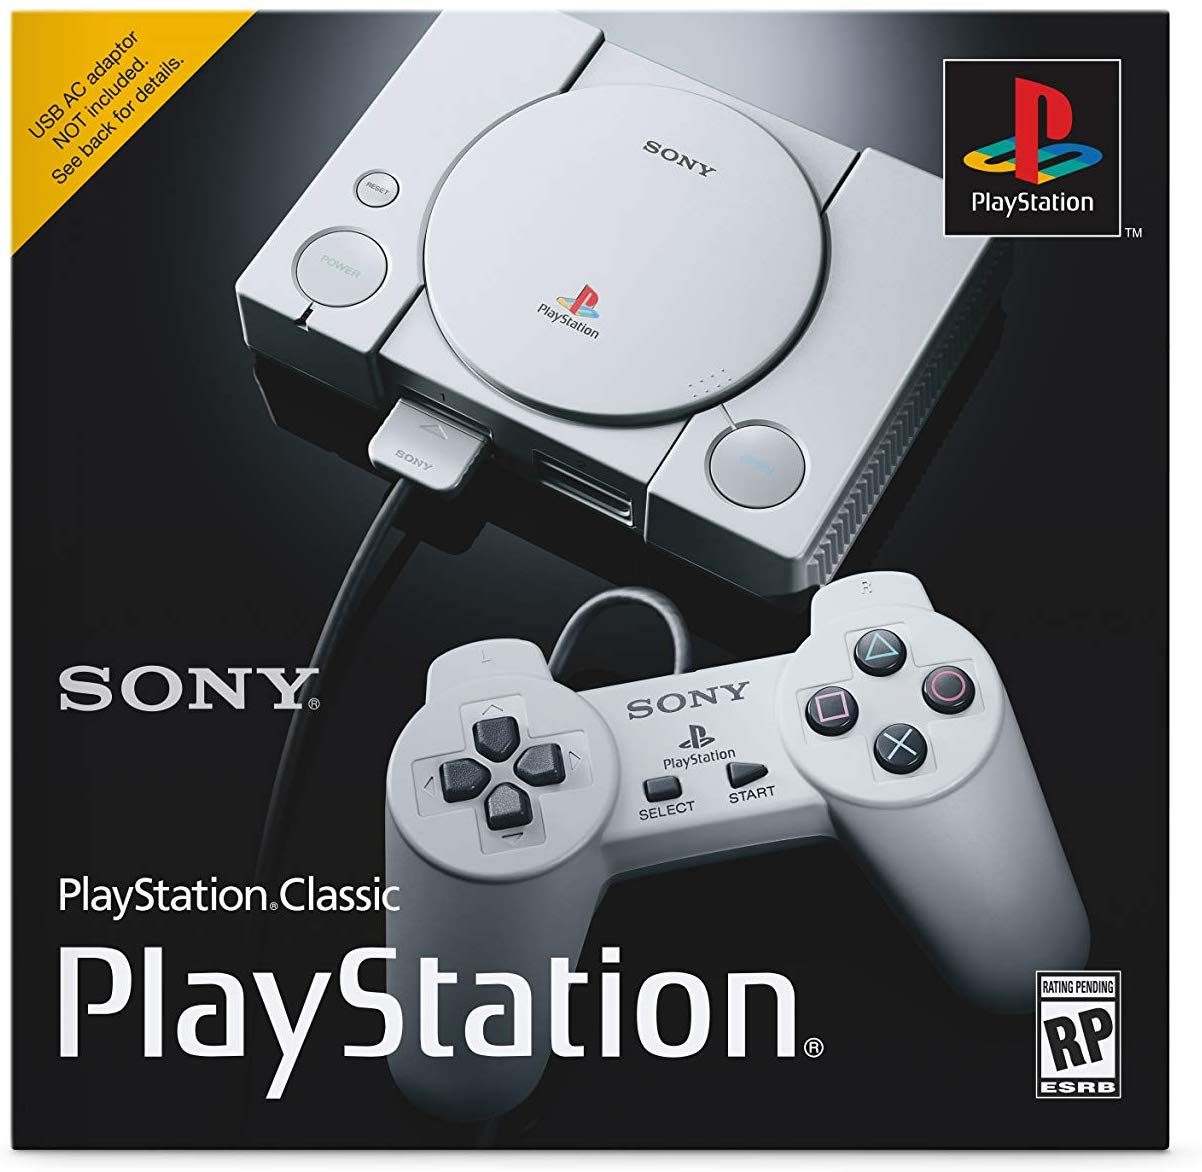 Enter To Win A Playstation Classic Gaming System